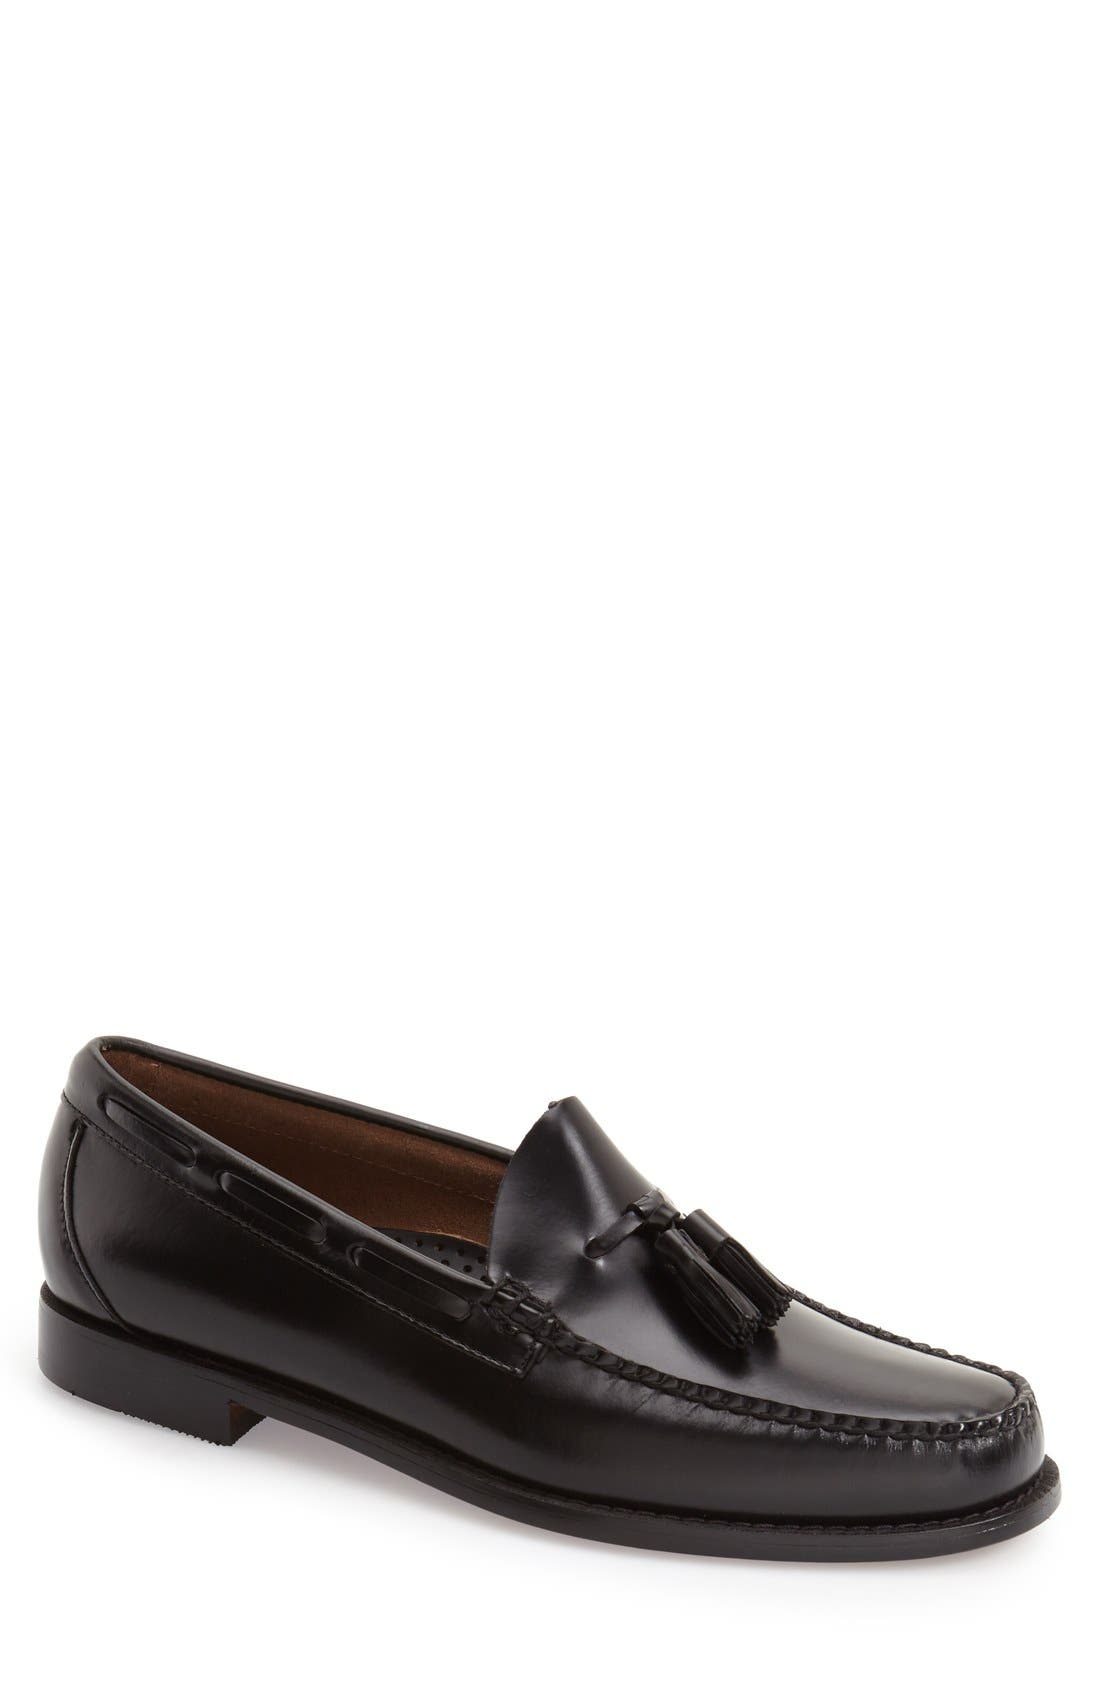 G.H. Bass & Co. 'Lexington - Weejuns' Tassel Loafer (Men)